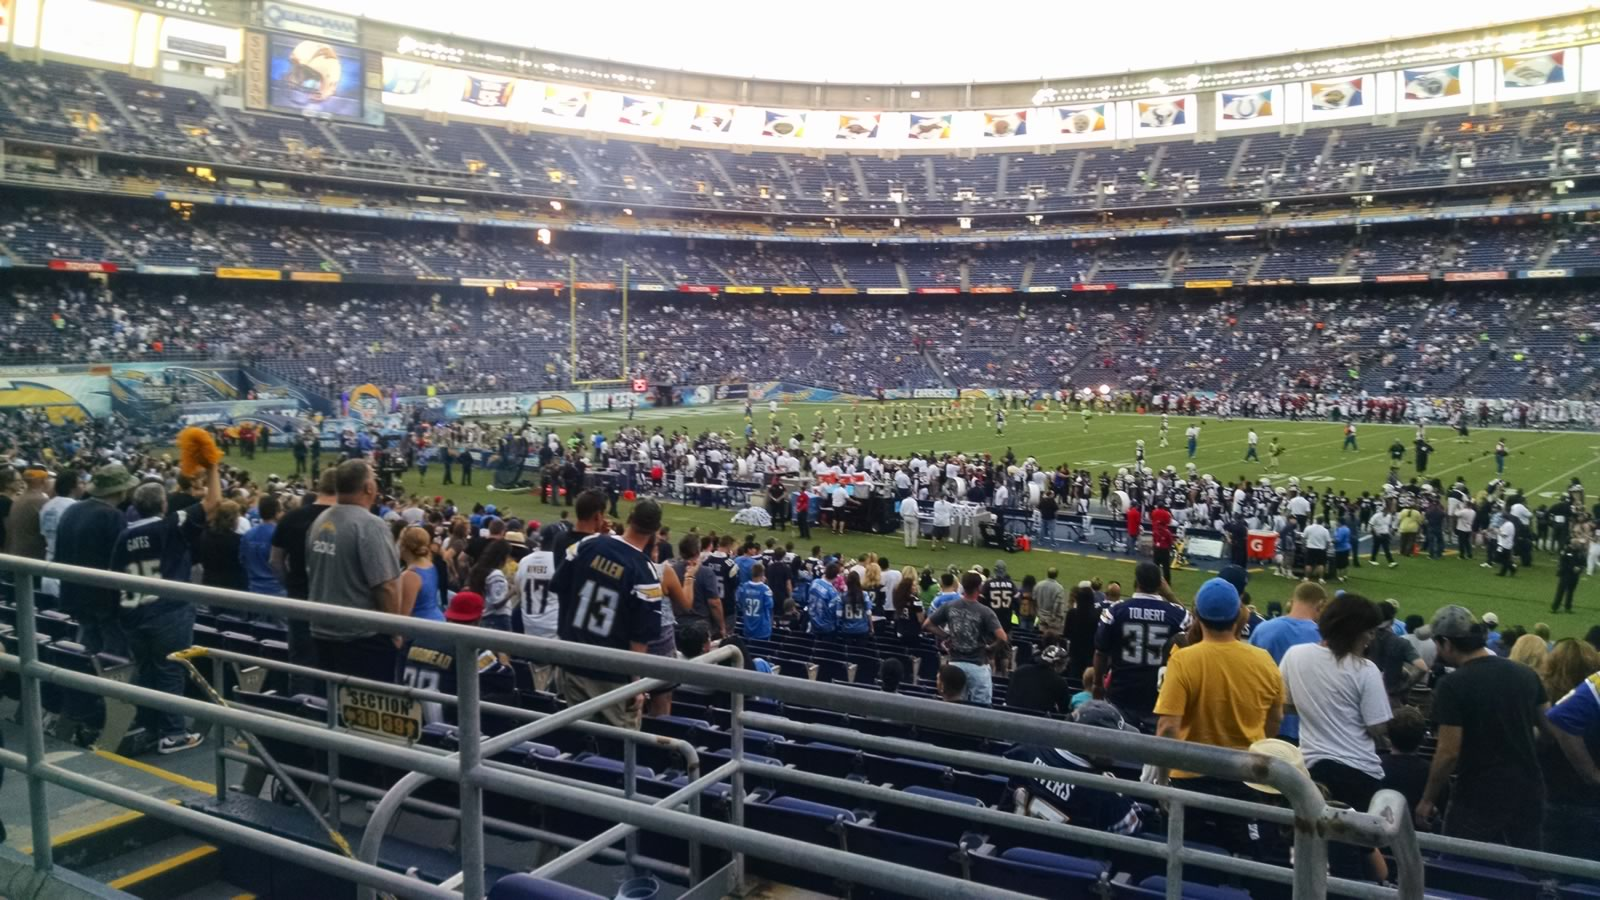 Seat View for Qualcomm Stadium Plaza 39, Row 1, Seat 17